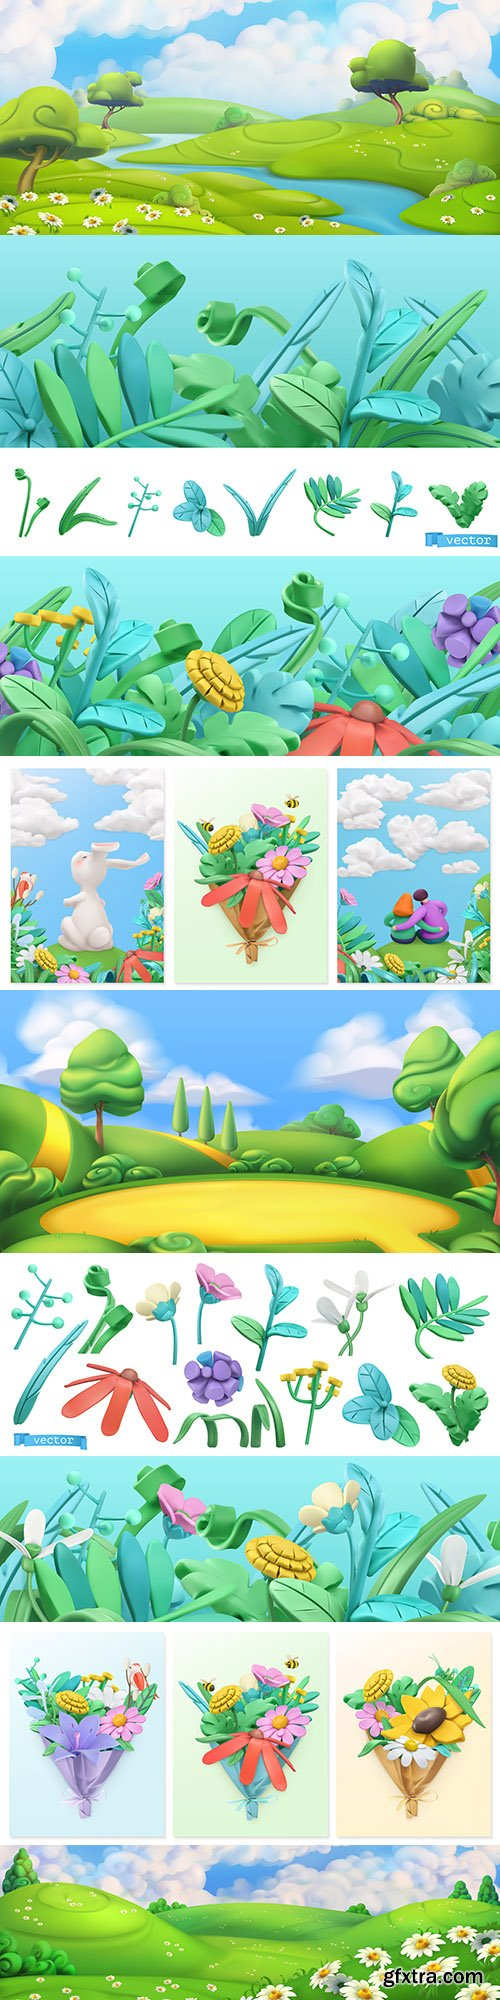 Landscape and spring flowers 3d illustrations